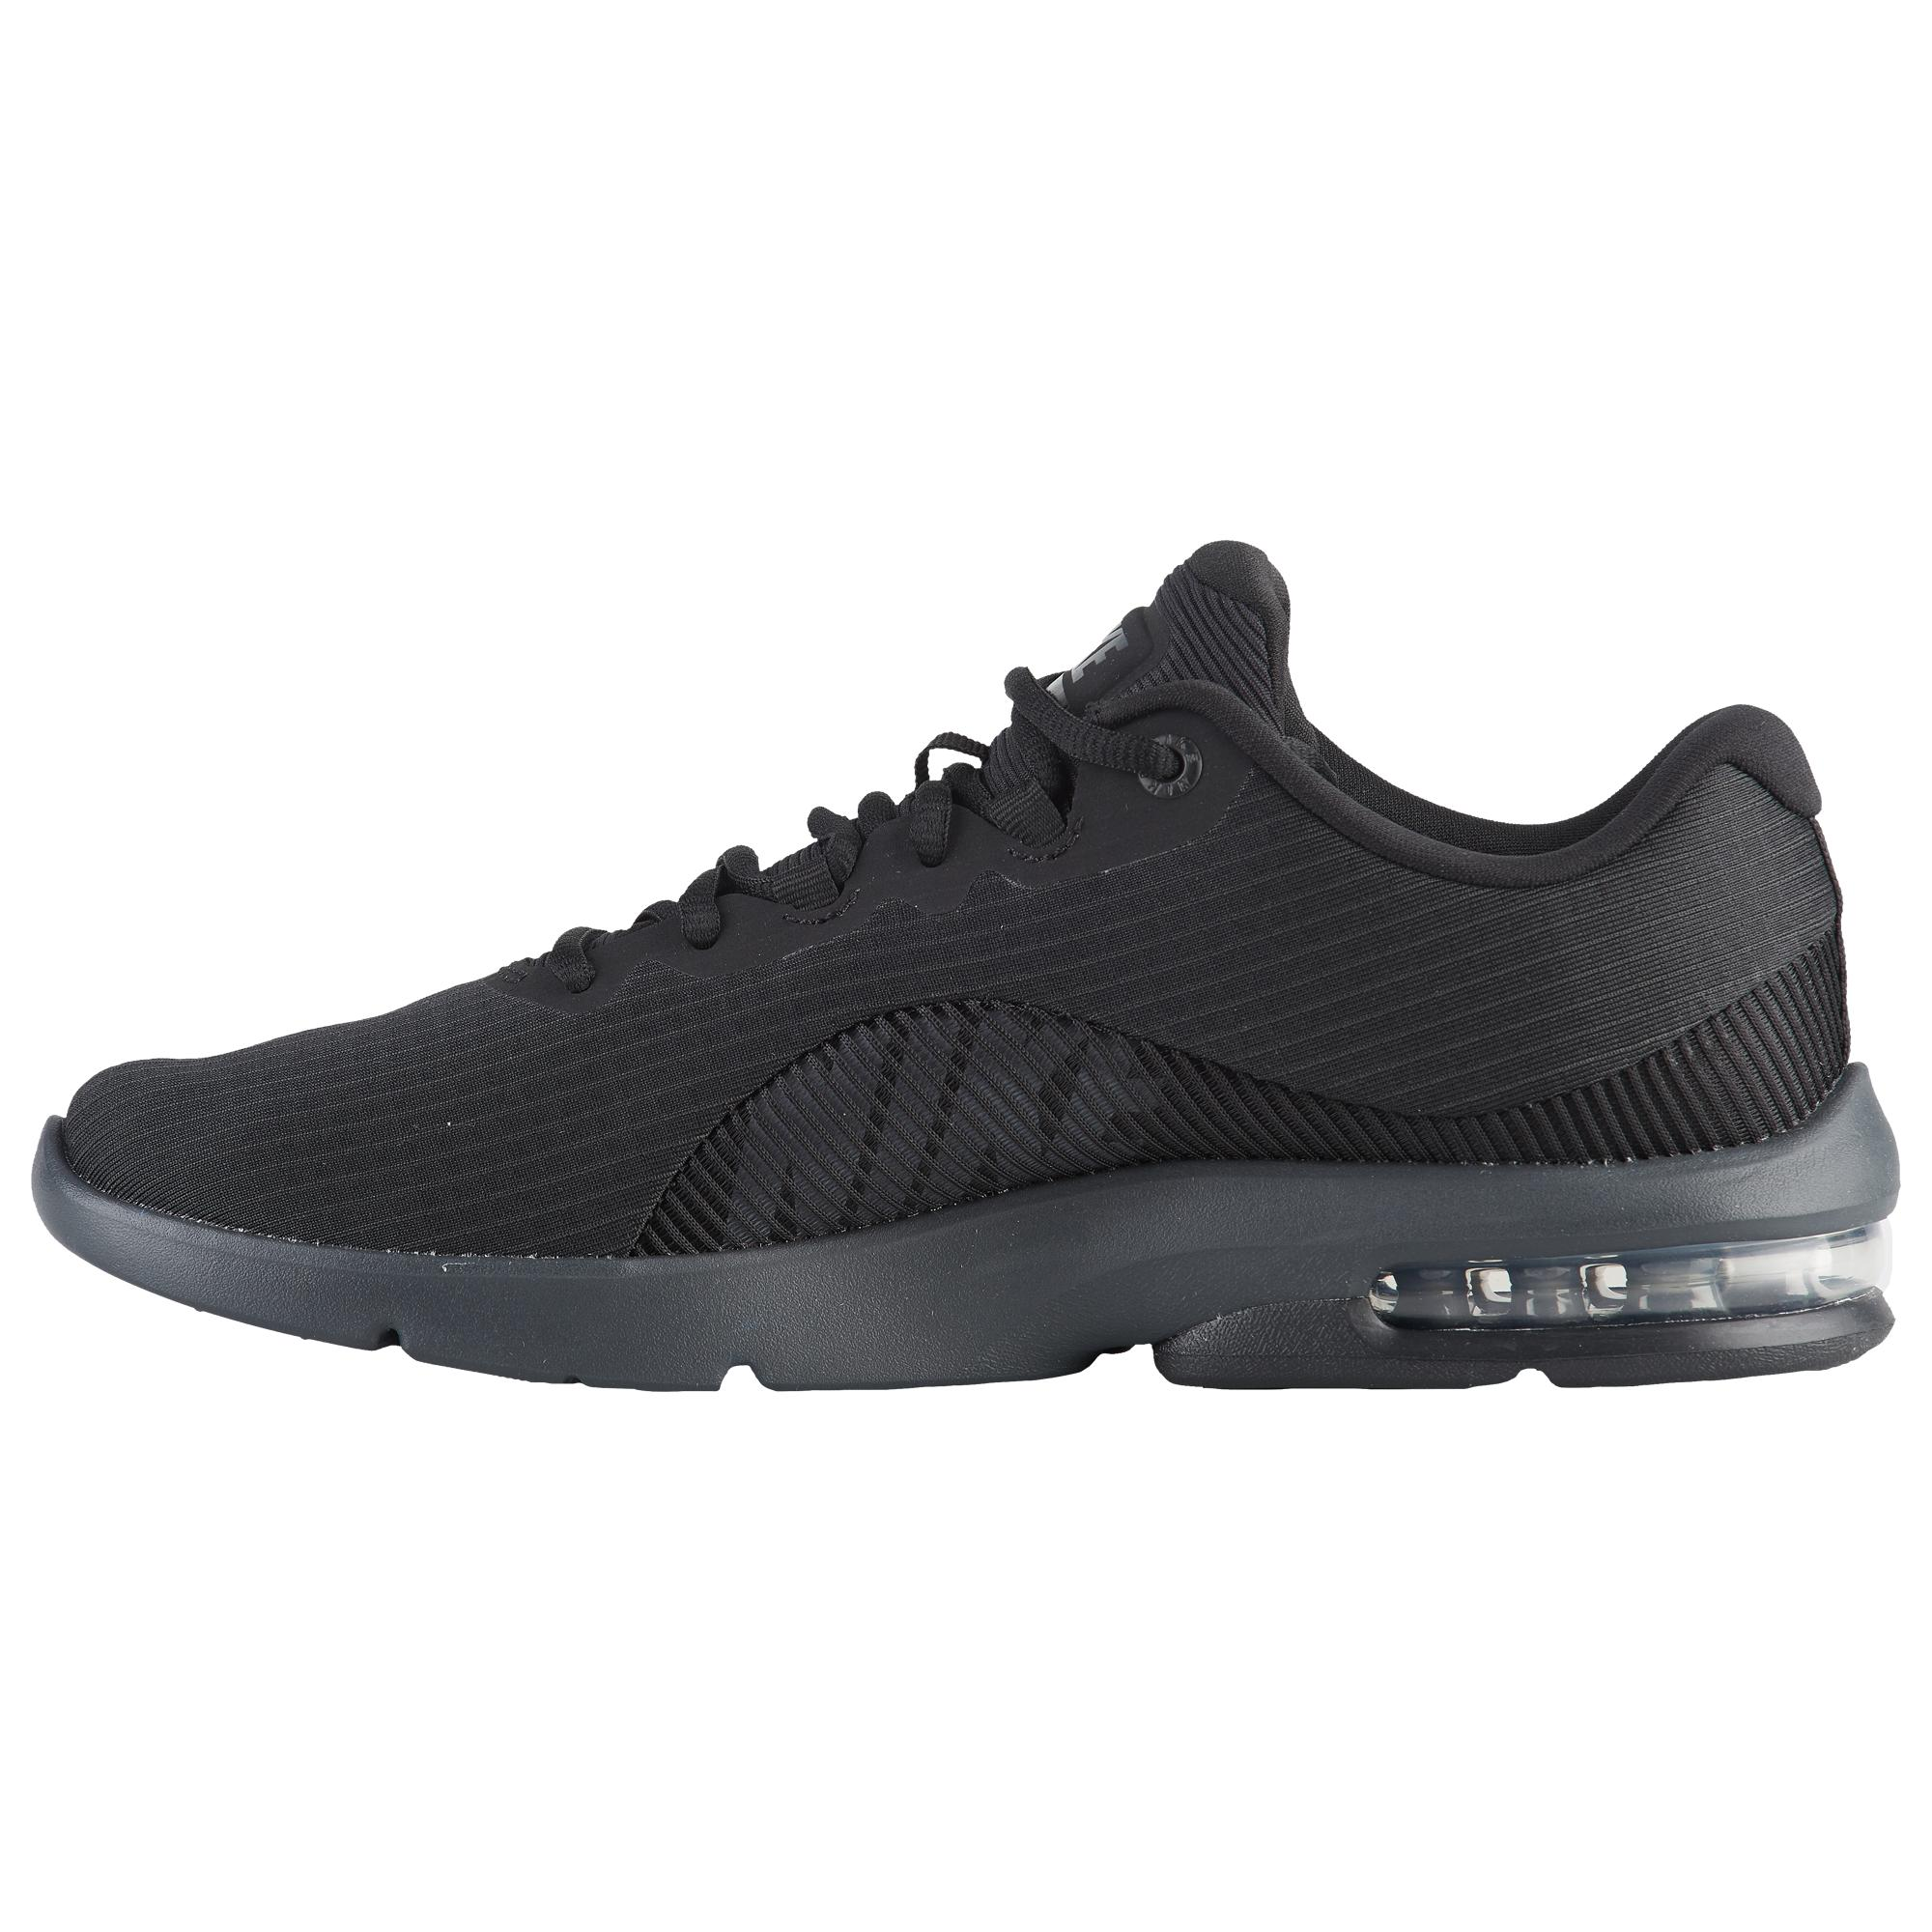 4ce86f67bd Nike - Black Air Max Advantage 2 for Men - Lyst. View fullscreen